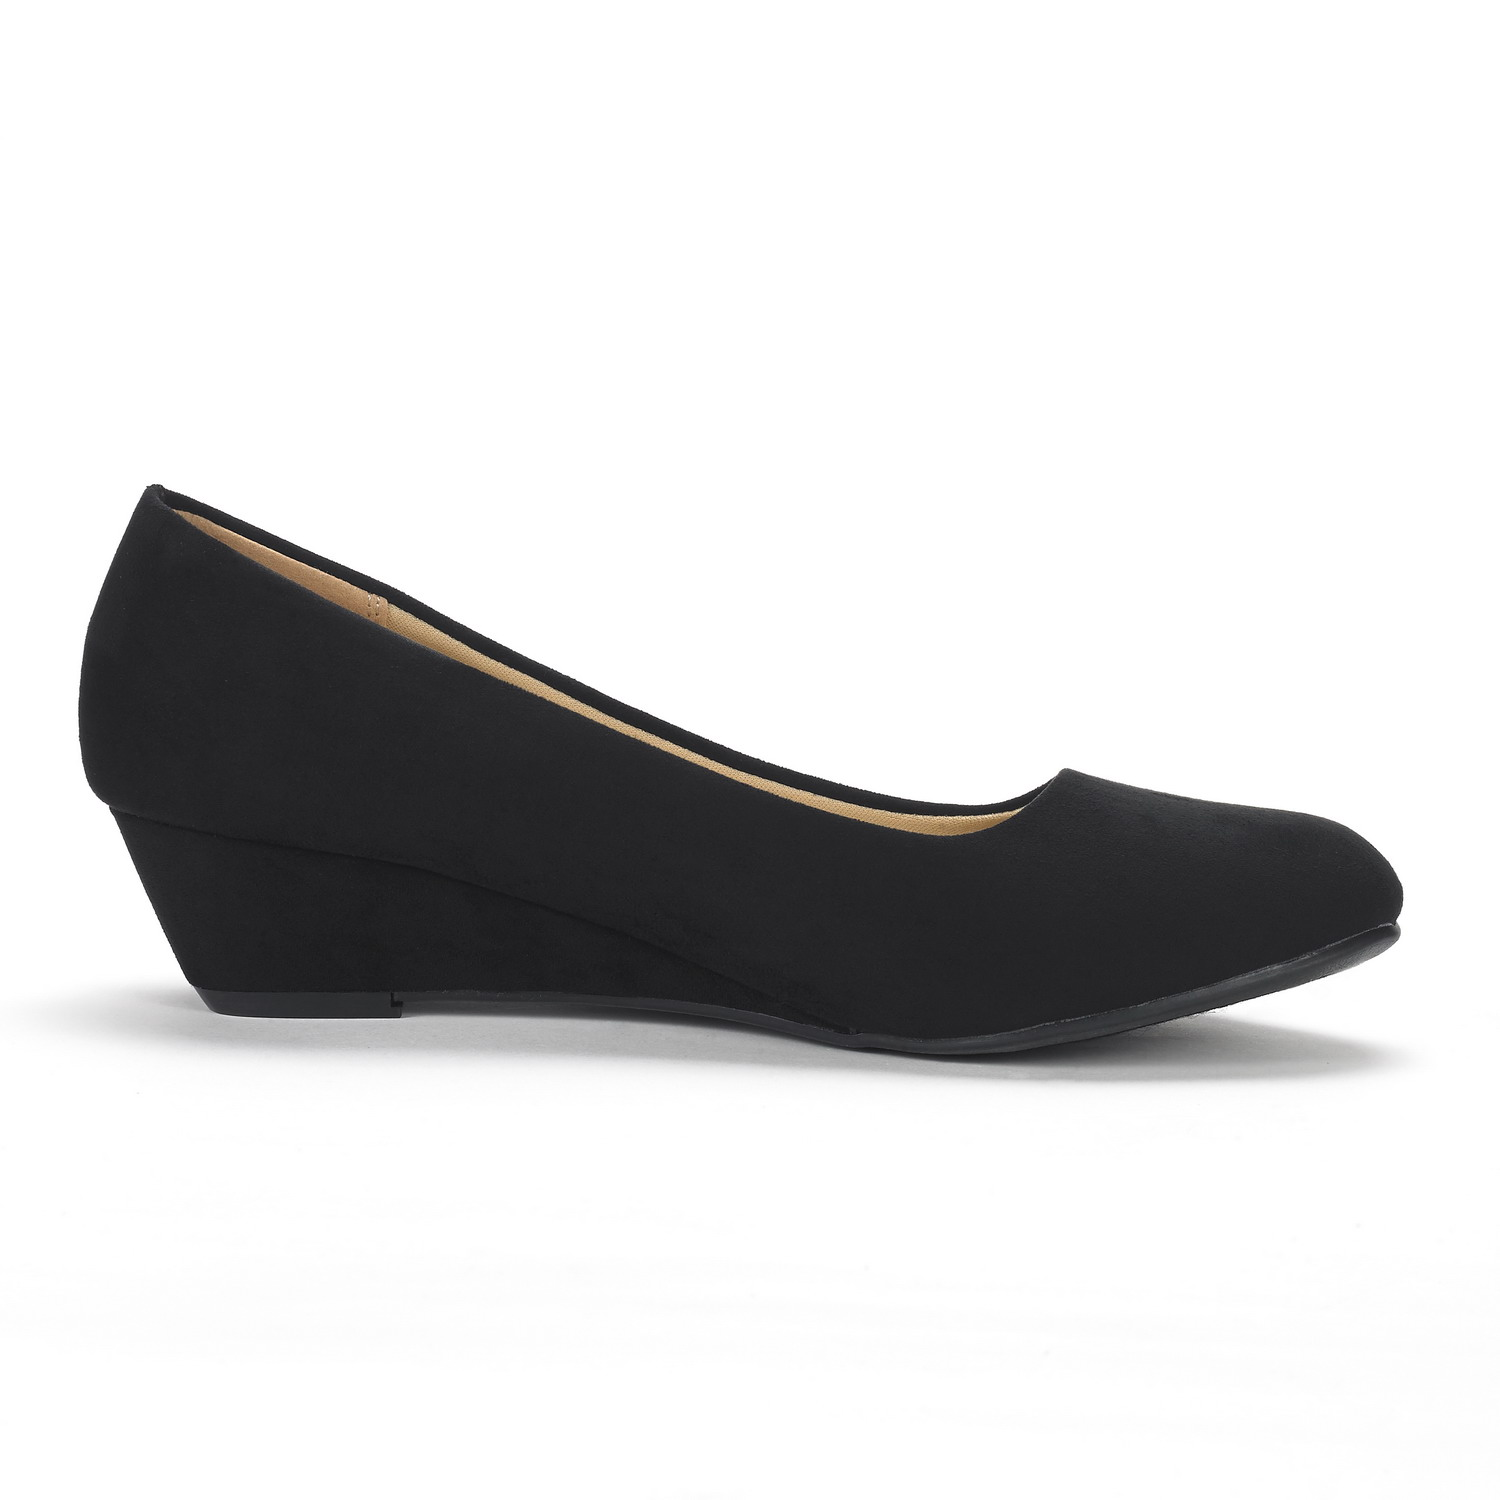 DREAM-PAIRS-Women-039-s-Mid-Wedge-Heel-Shoes-Slip-On-Comfort-Dress-Shoes-Suede-PU thumbnail 37